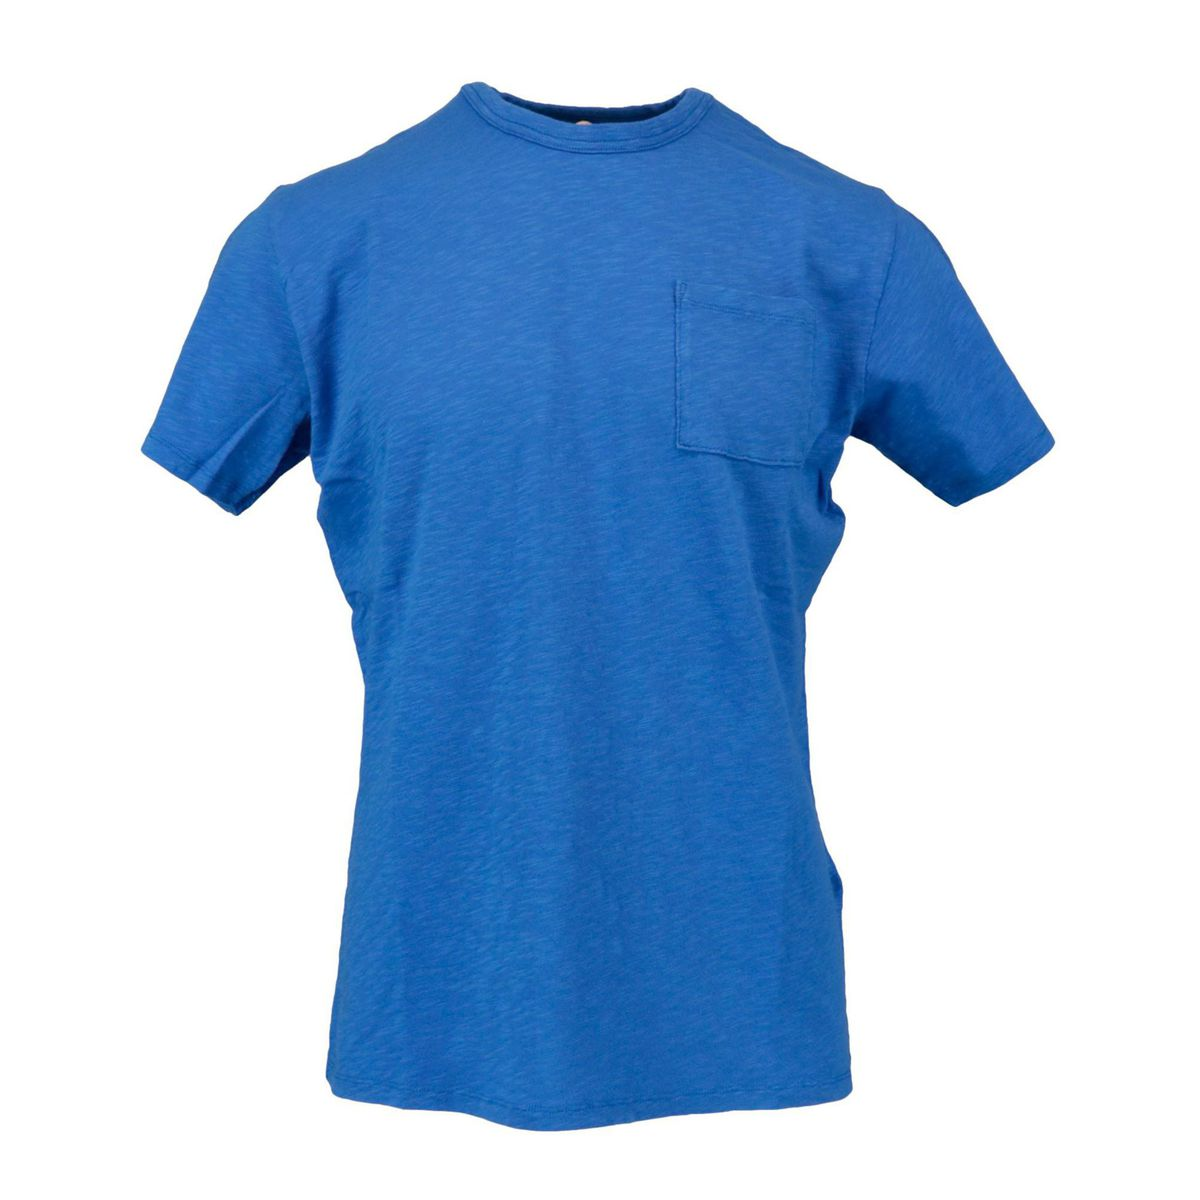 President T-shirt with pocket Bluette MC2 Saint Barth